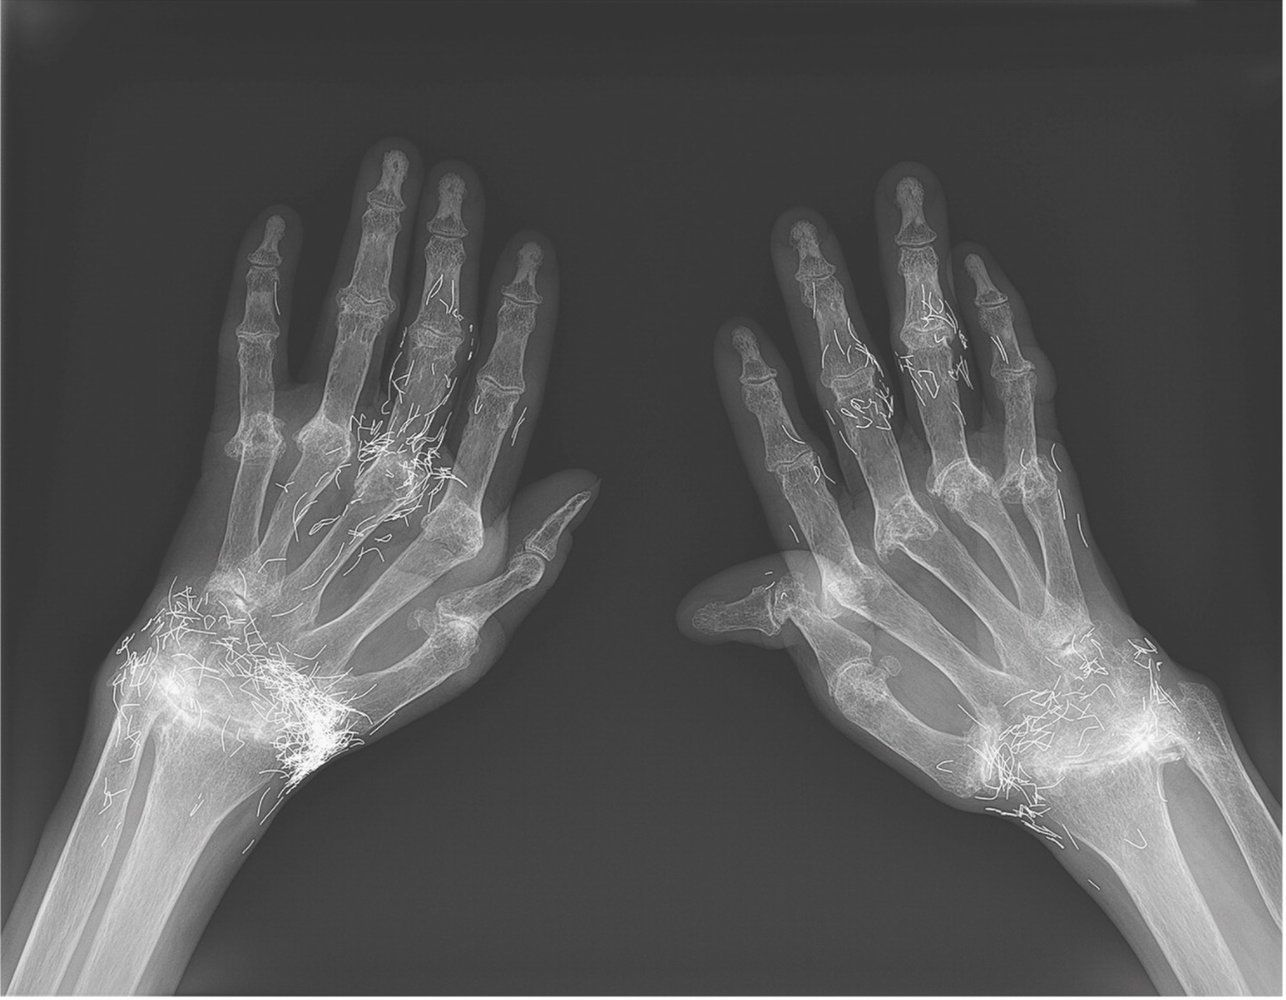 Why a Woman\'s Wrists Glowed with Gold Filaments on an X-Ray | Pinterest